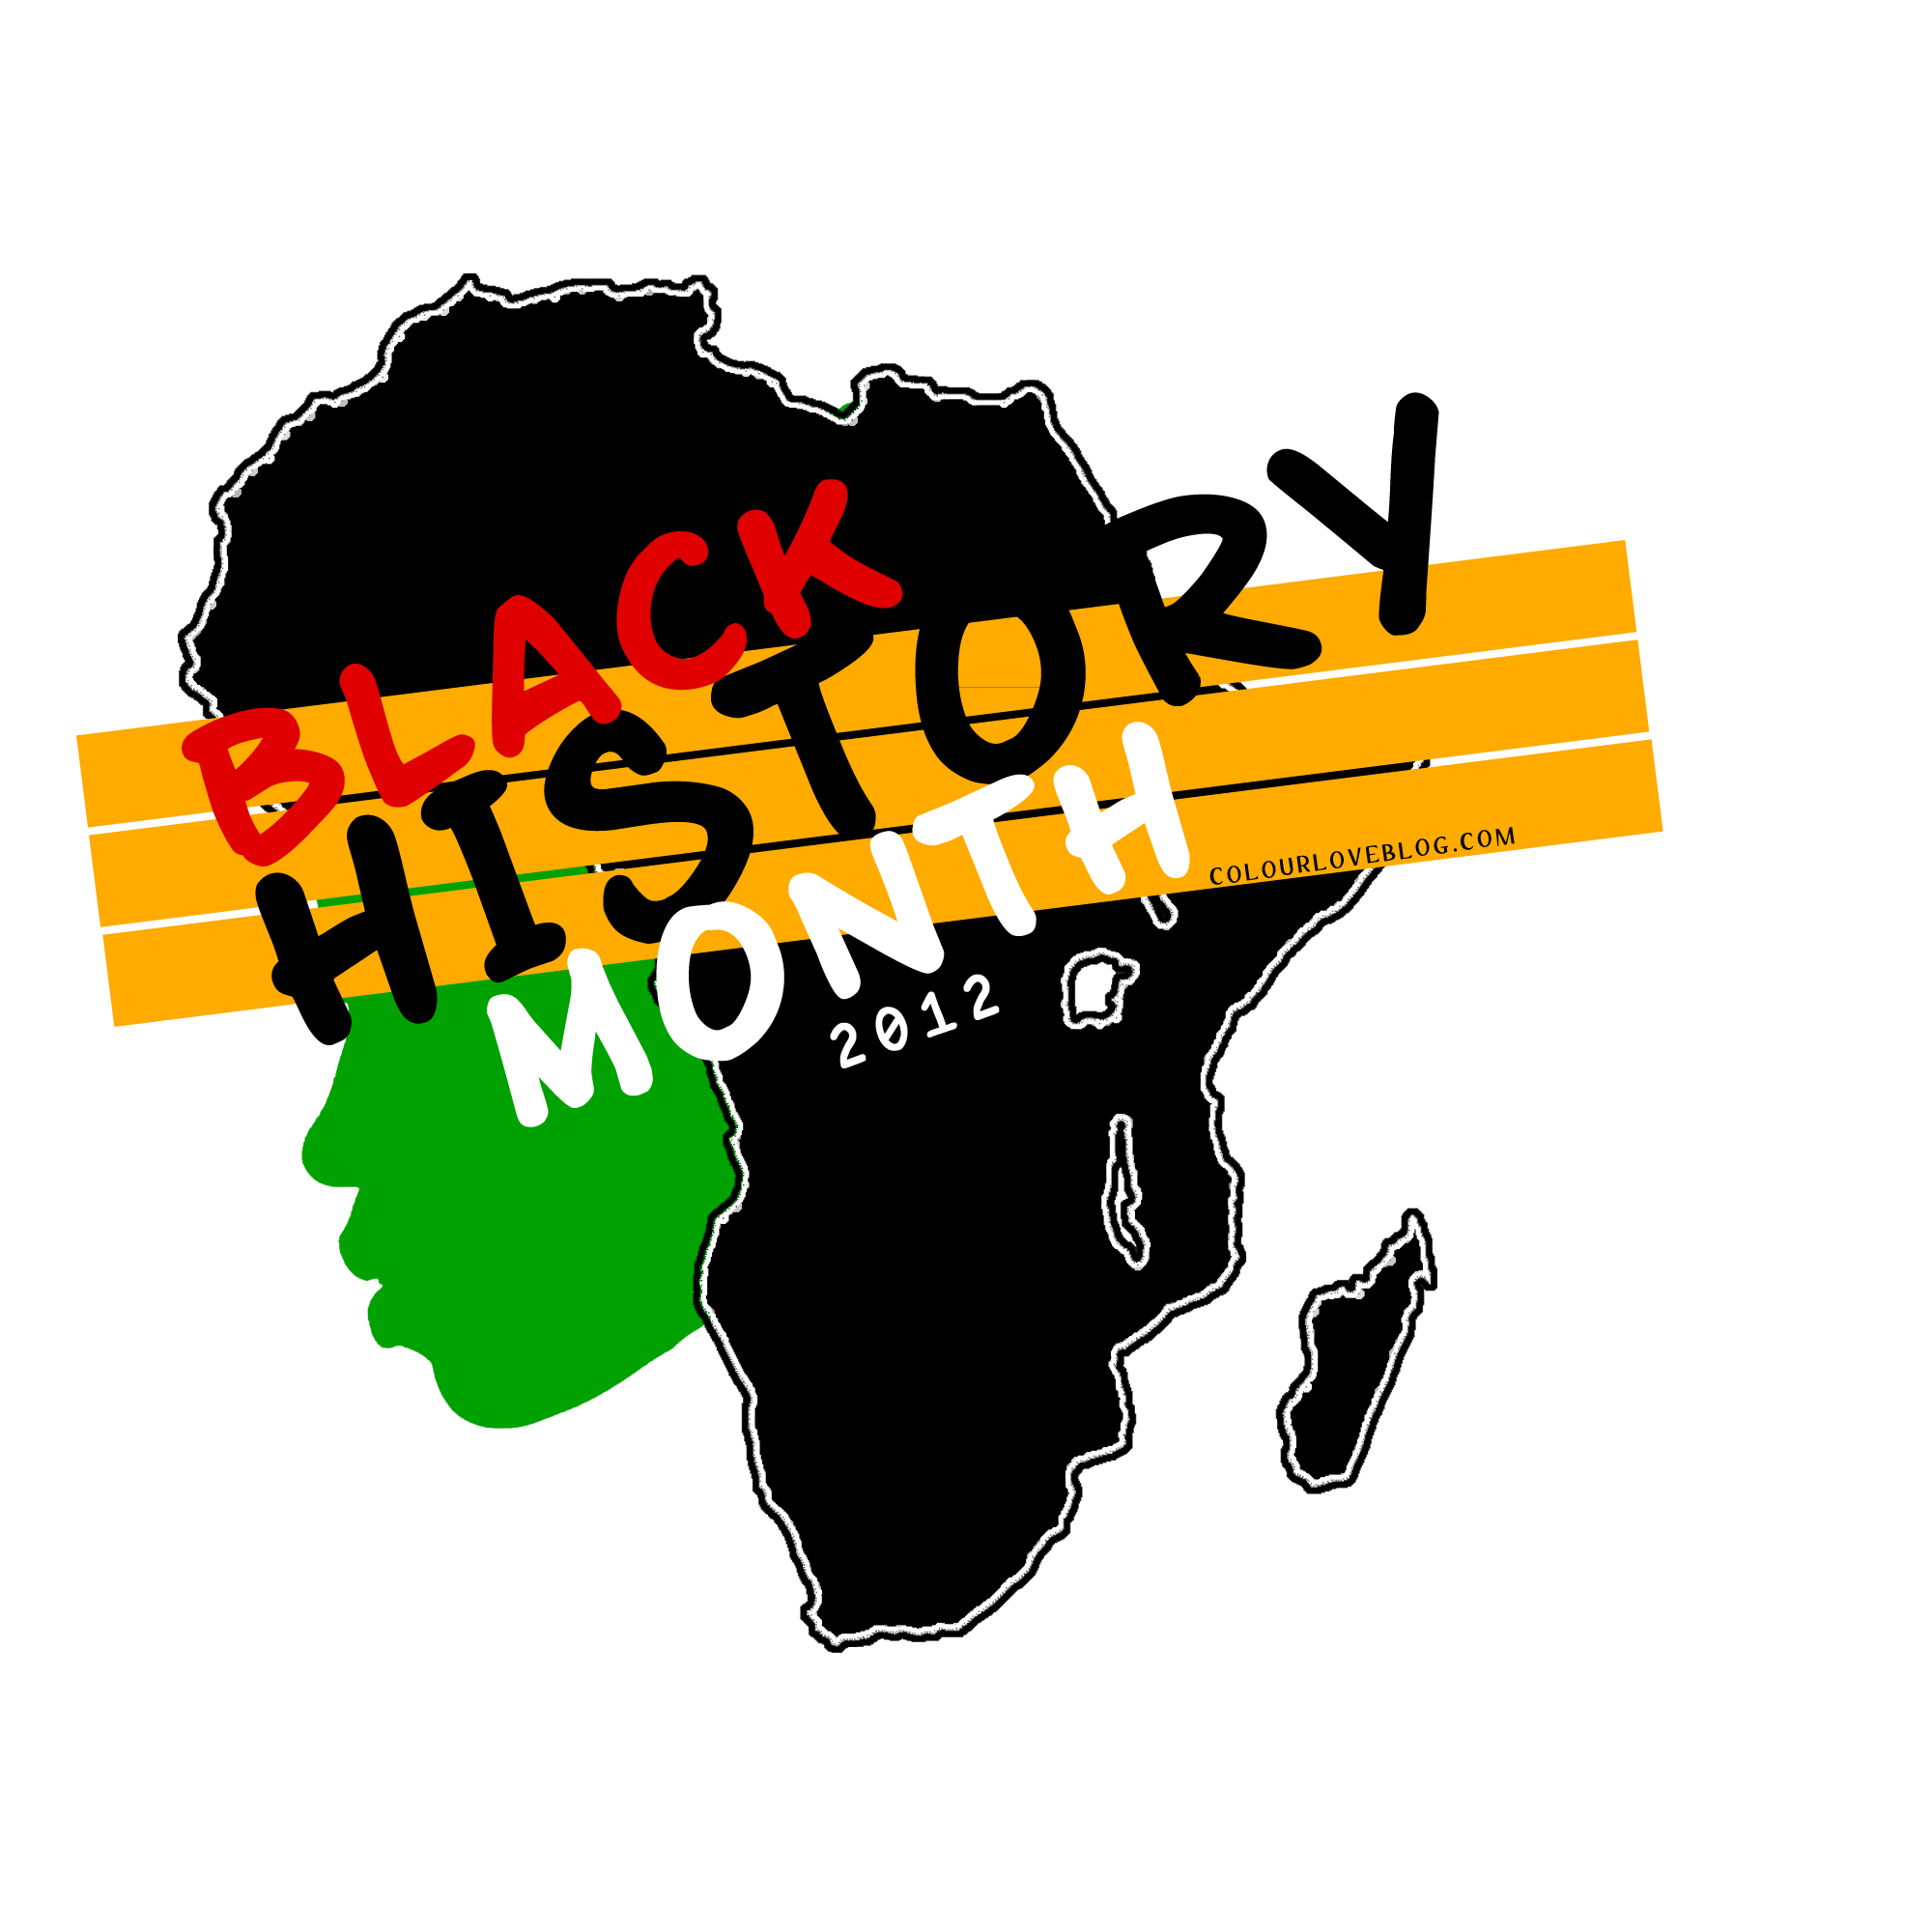 Black History Month Celebration Clip Art black history month images ...